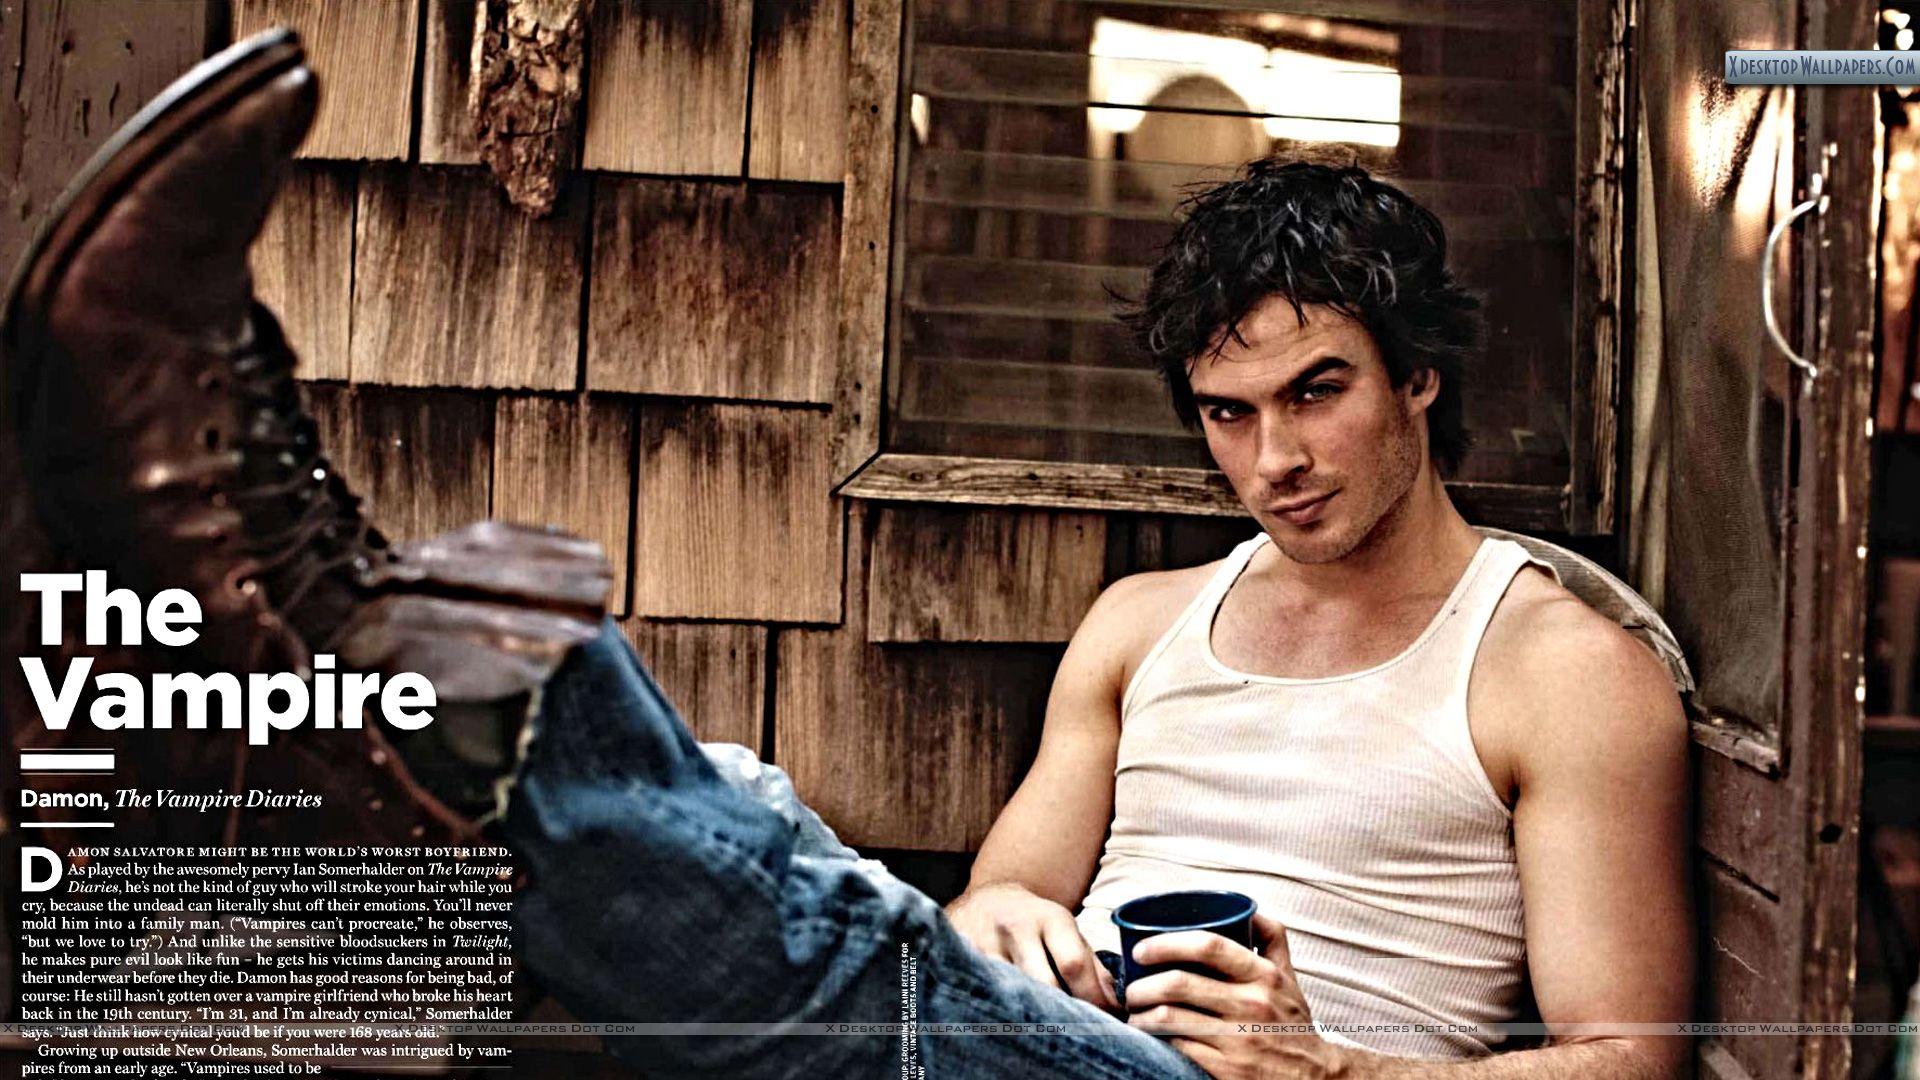 Ian somerhalder showing his body wallpaper you are viewing wallpaper titled ian somerhalder voltagebd Image collections